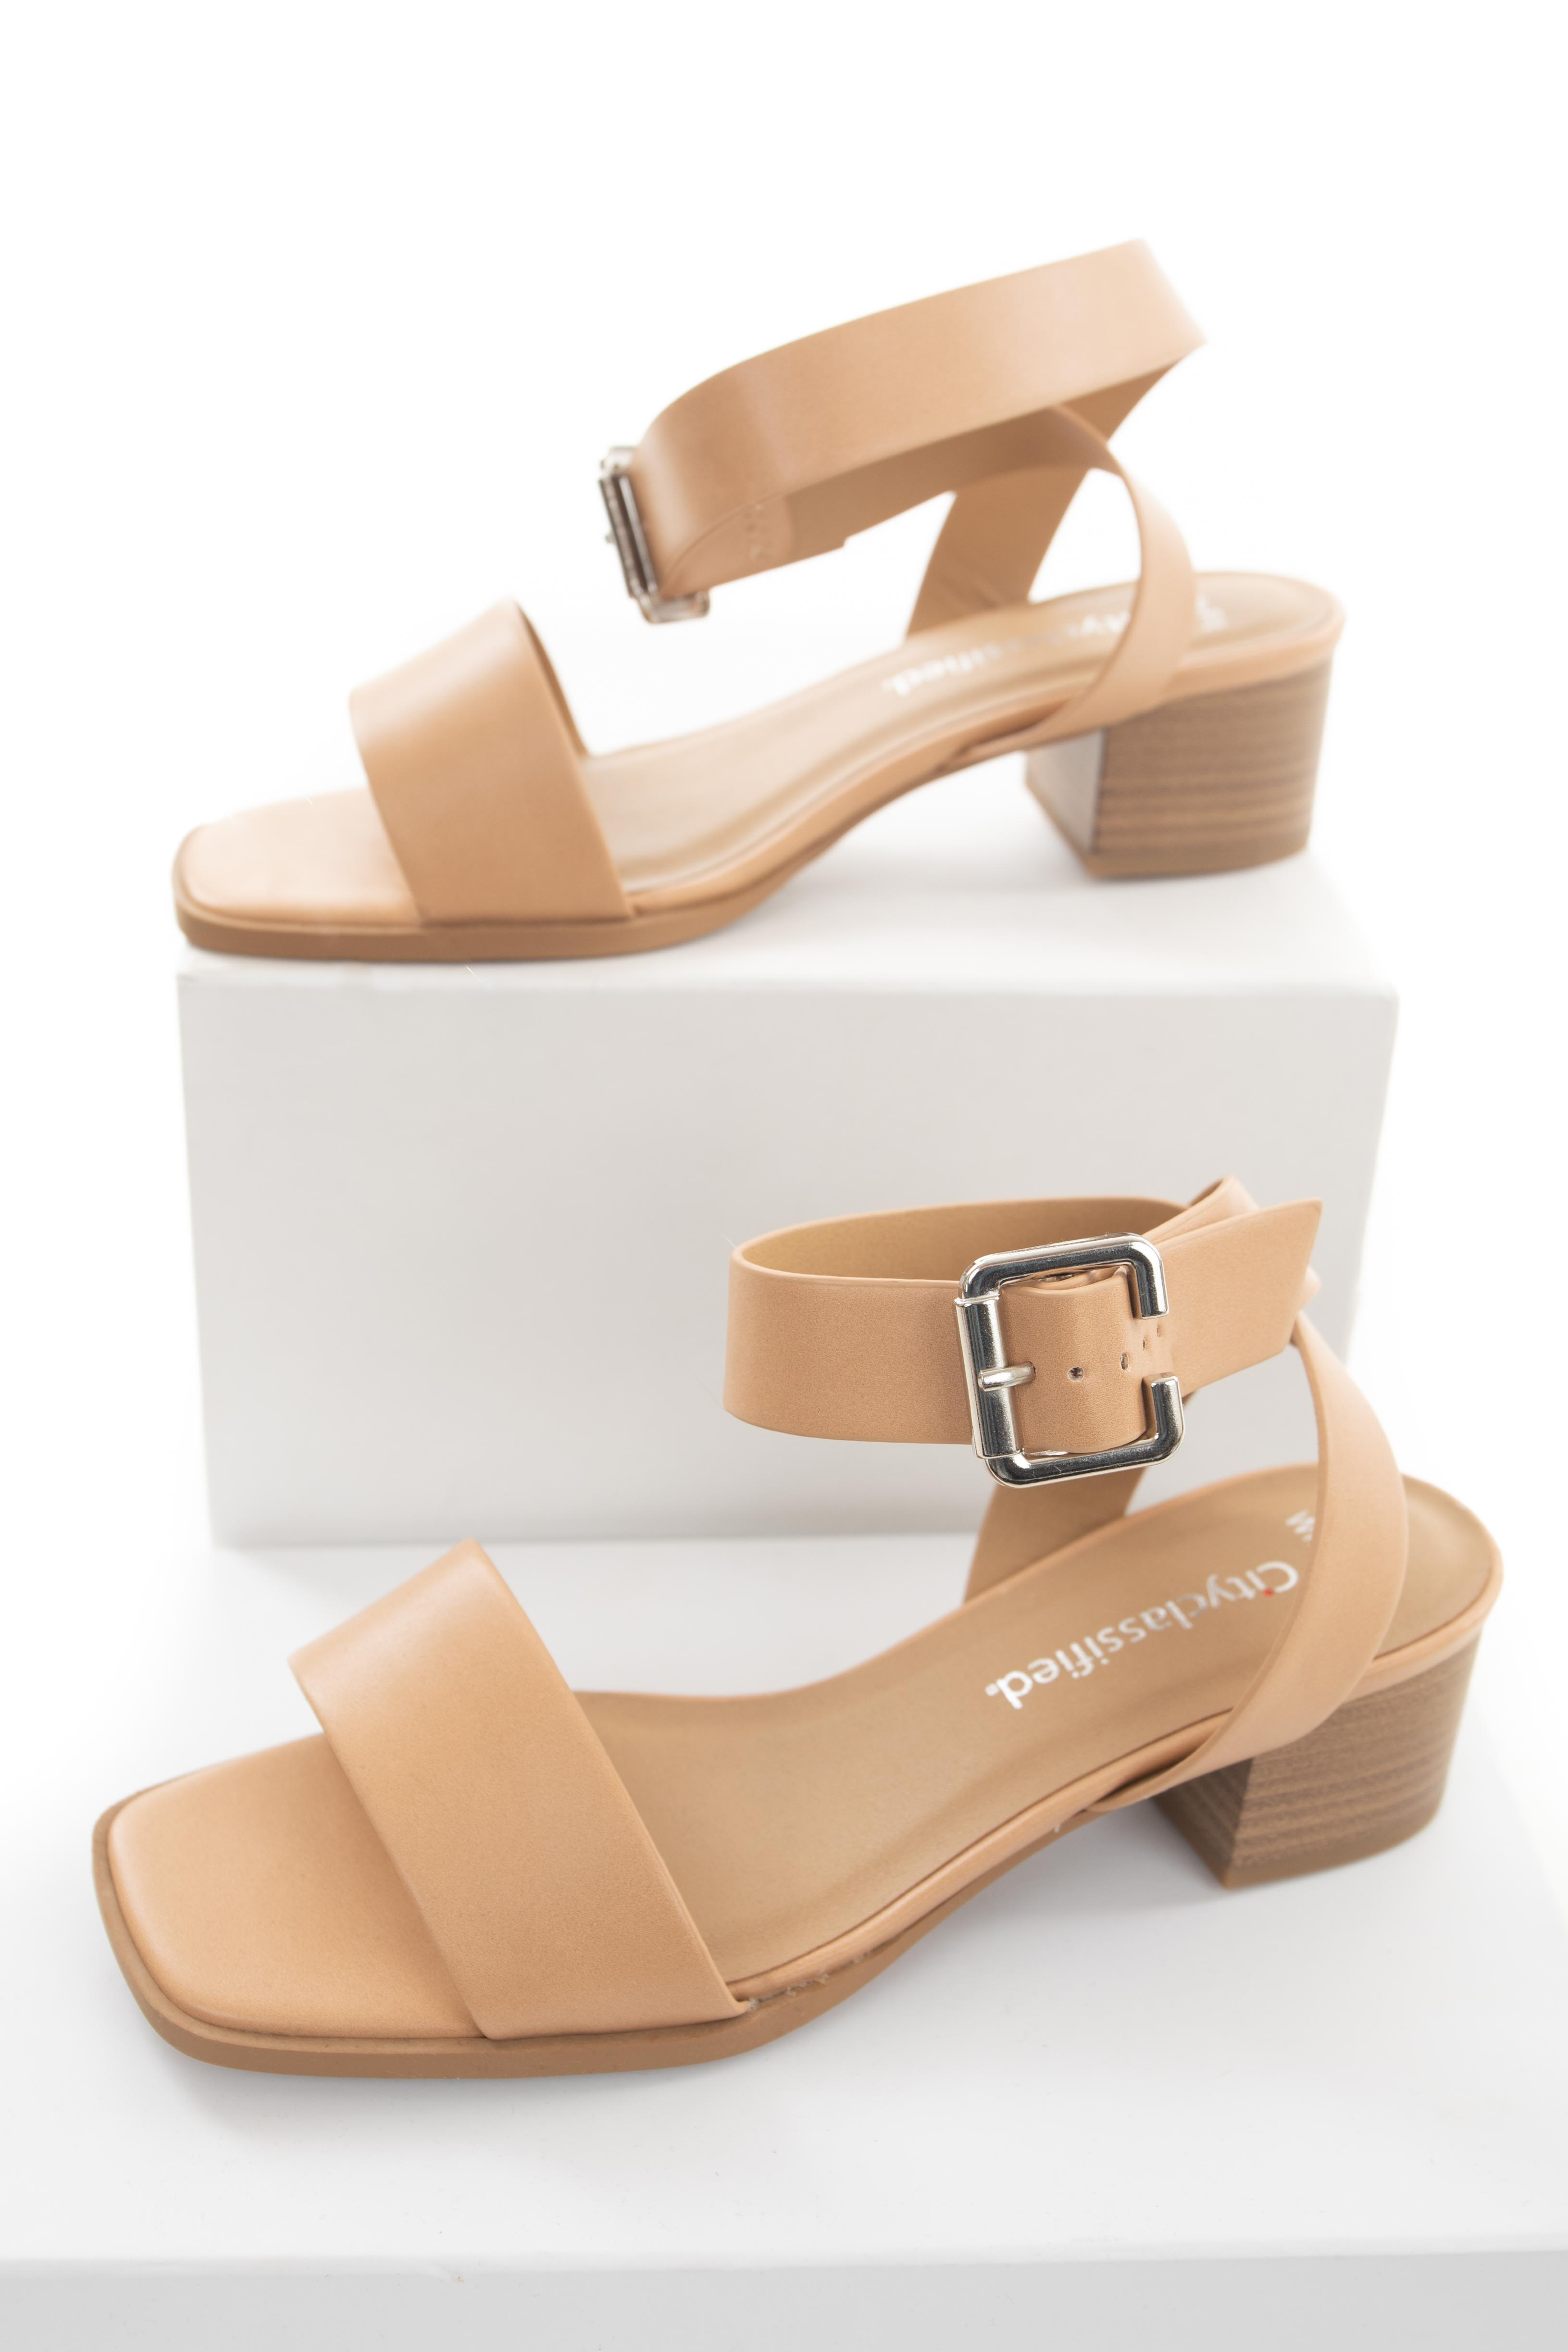 Desert Sand Ankle Strap Sandals with Silver Buckle